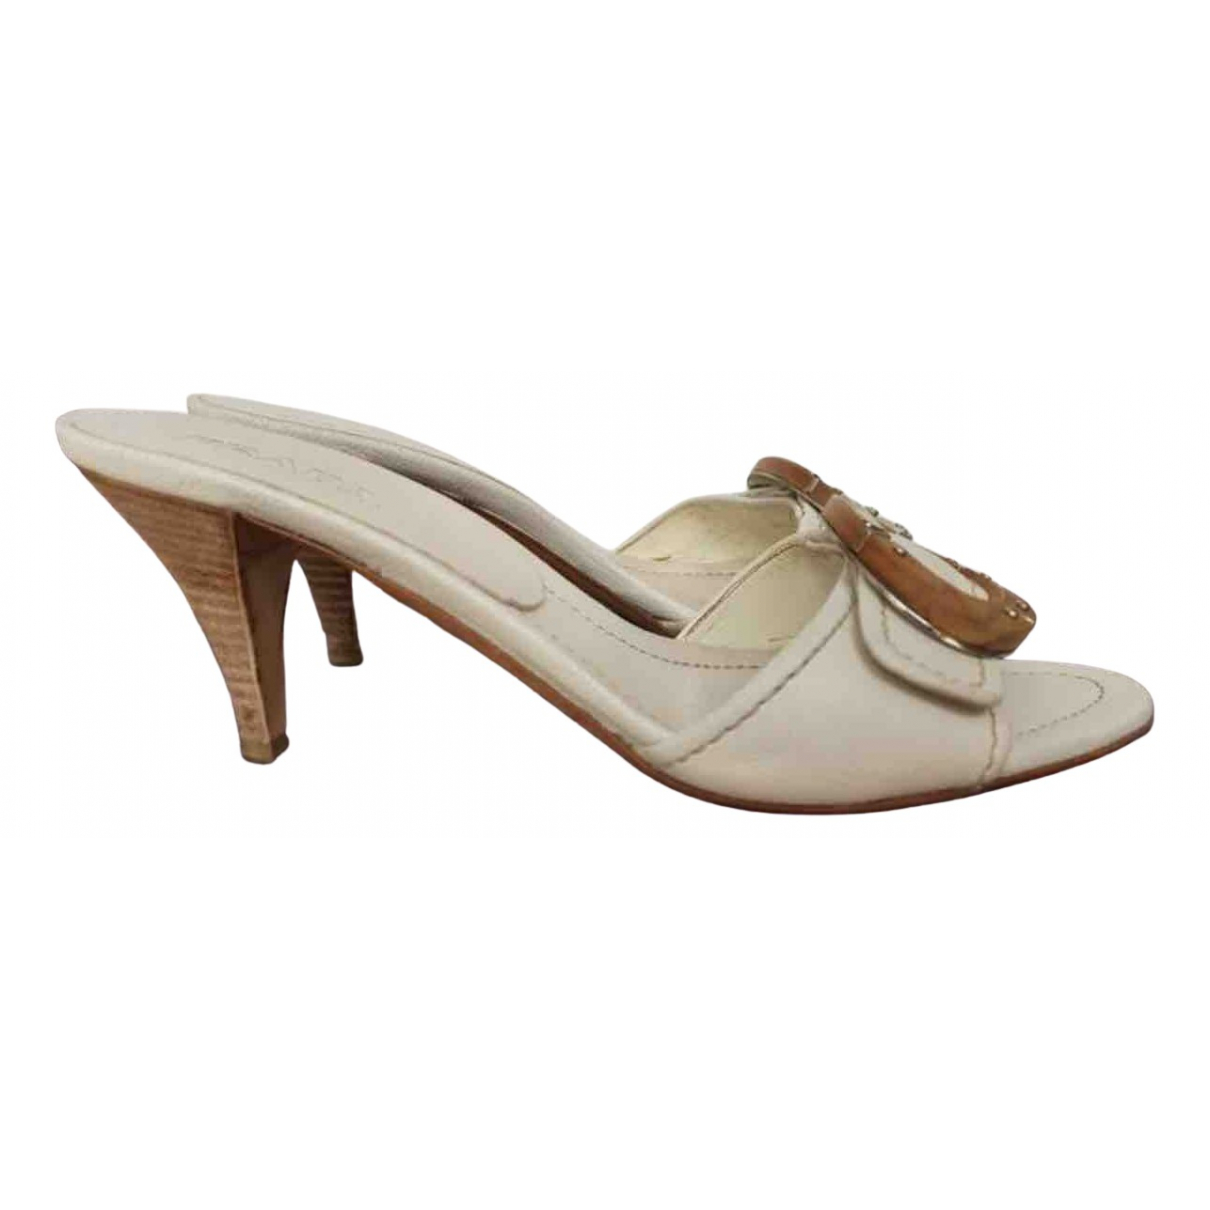 Prada \N Beige Sandals for Women 37 EU